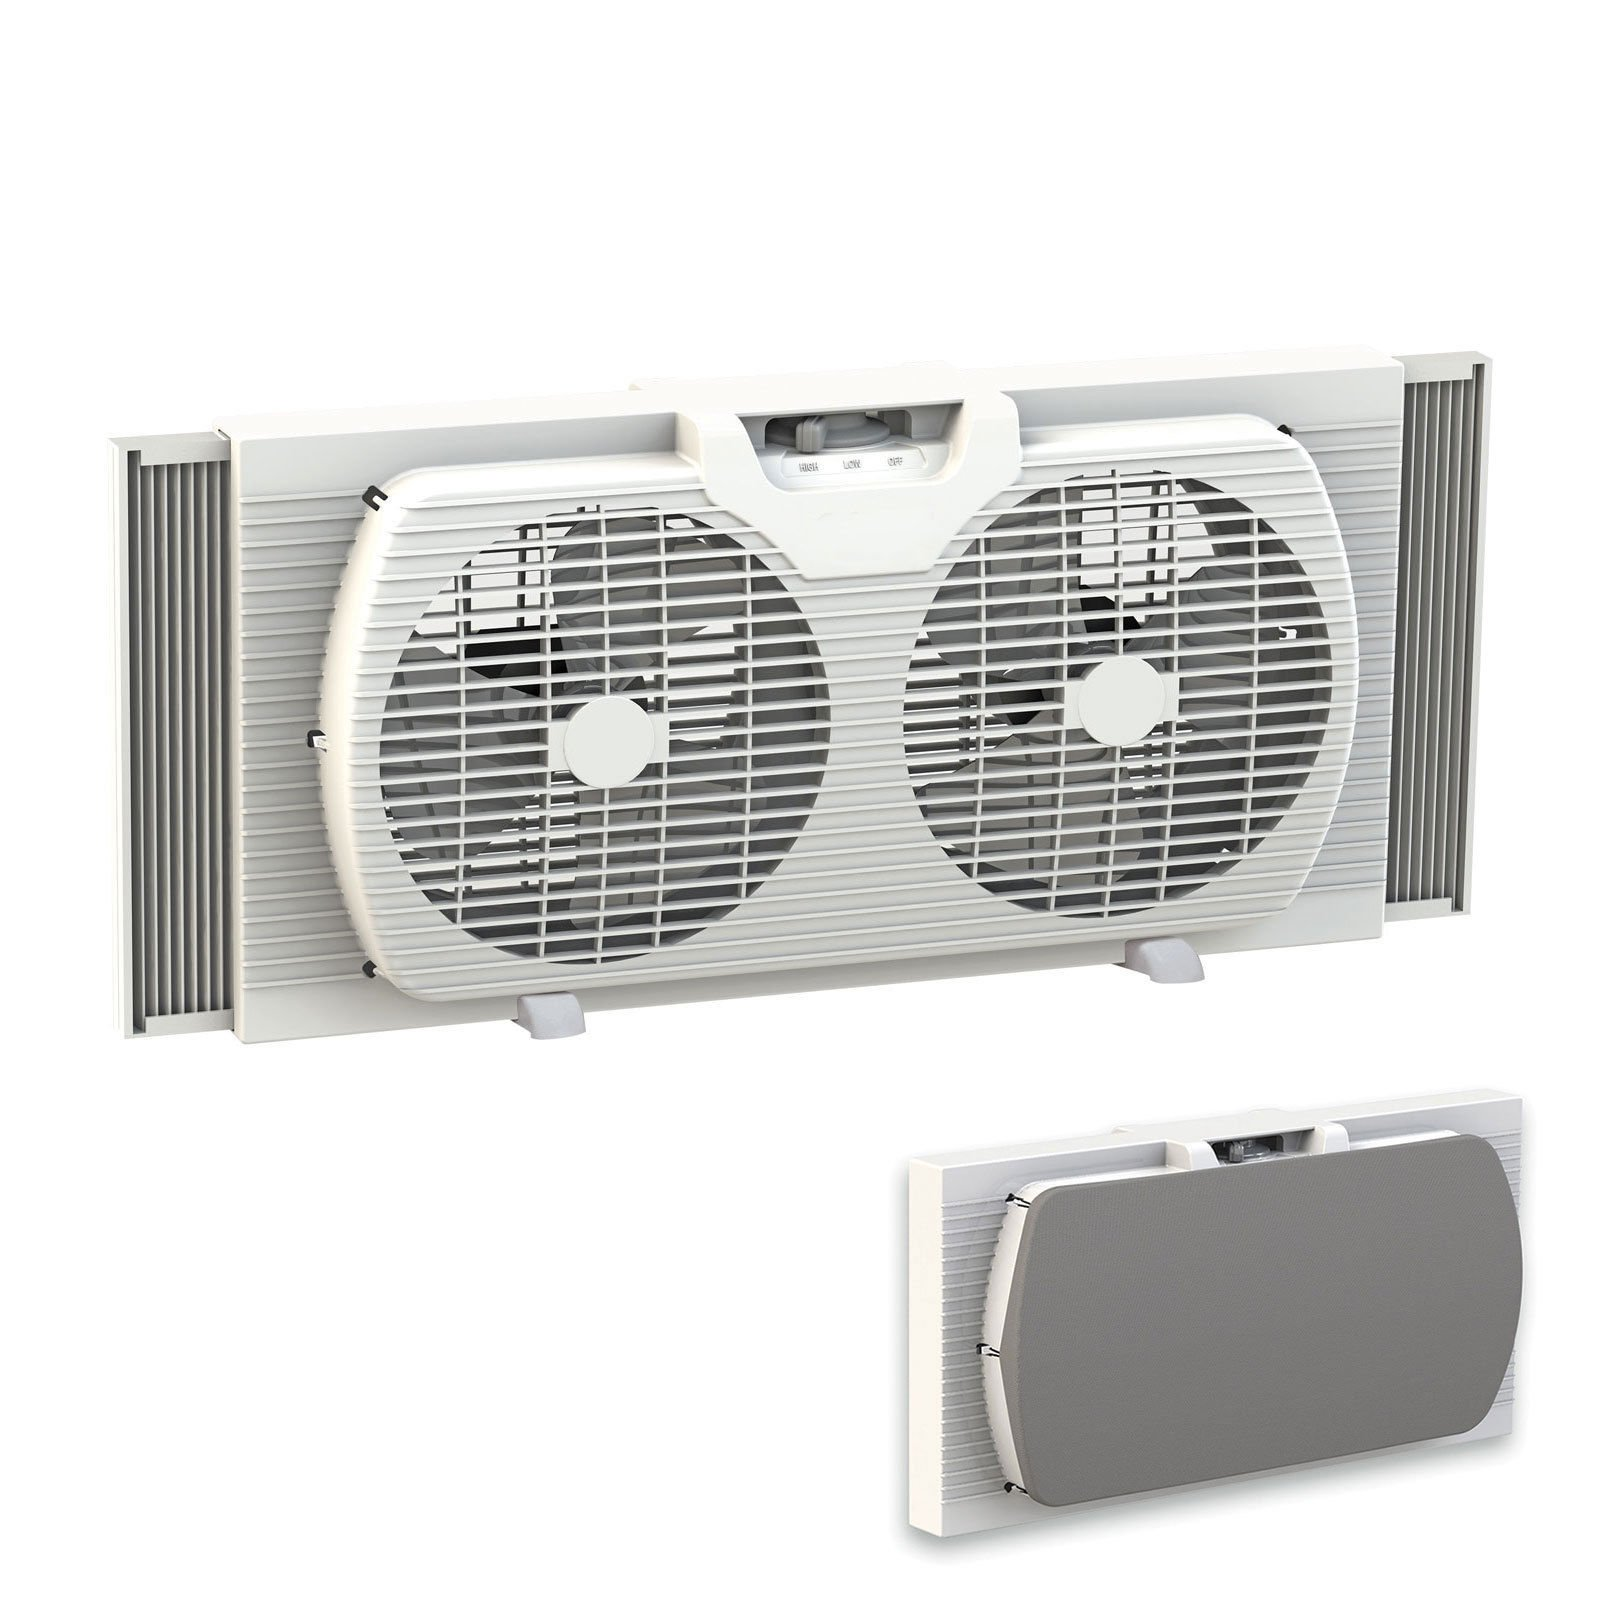 Lotus Analin Dual Blade 9-Inch Twin Window Fan with Cover Portable, White by Lotus Analin